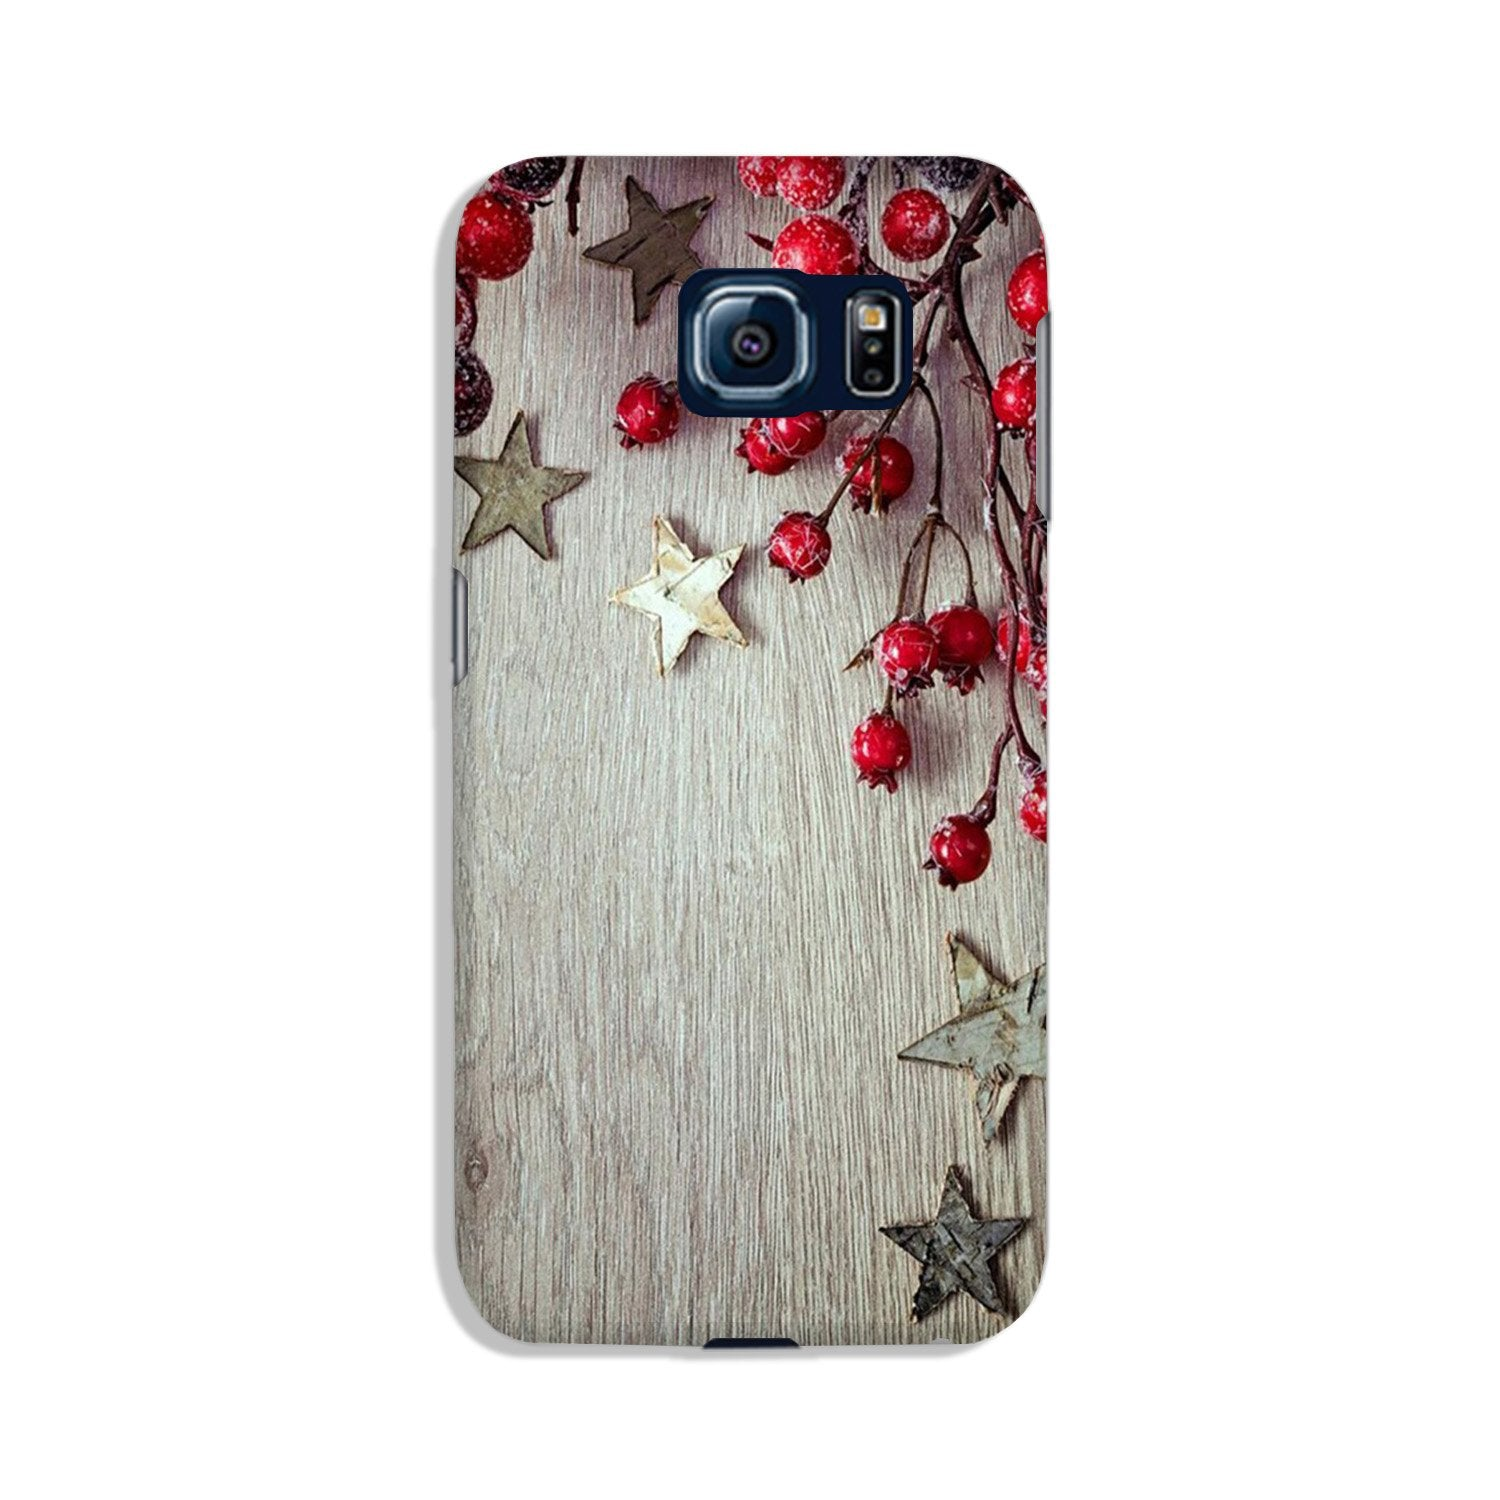 Stars Case for Galaxy S6